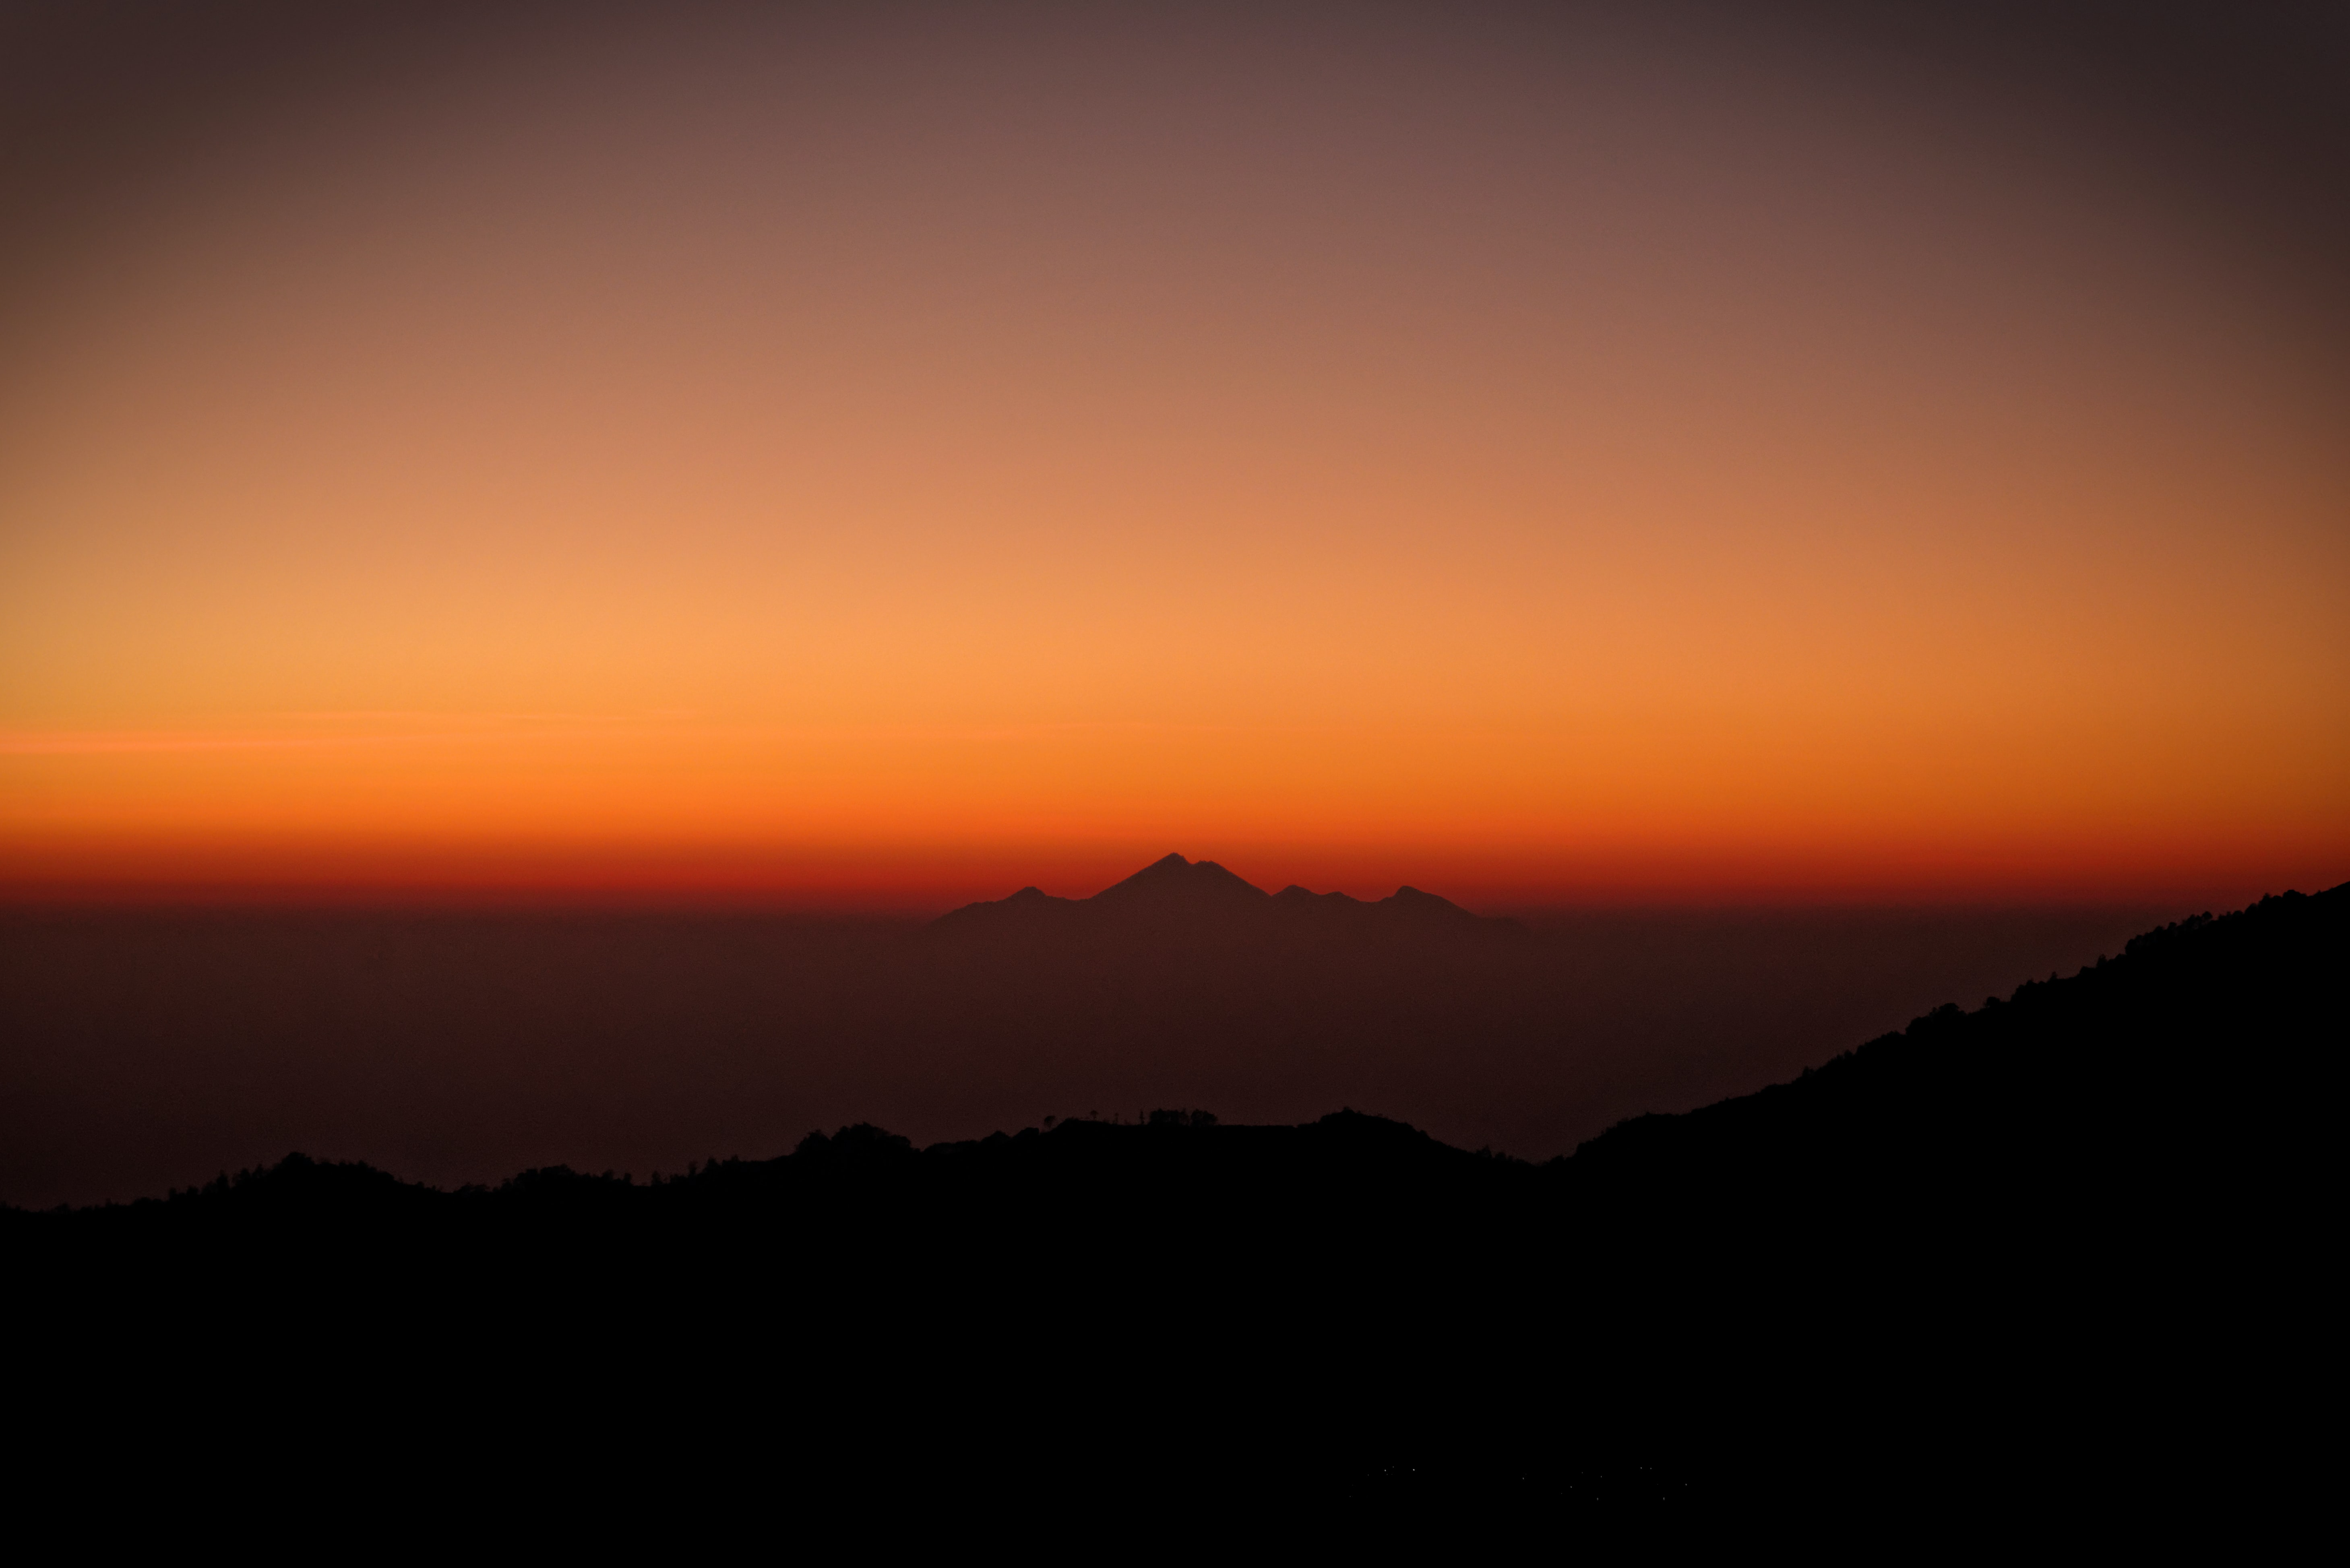 silhouette photography of mountains during sunset